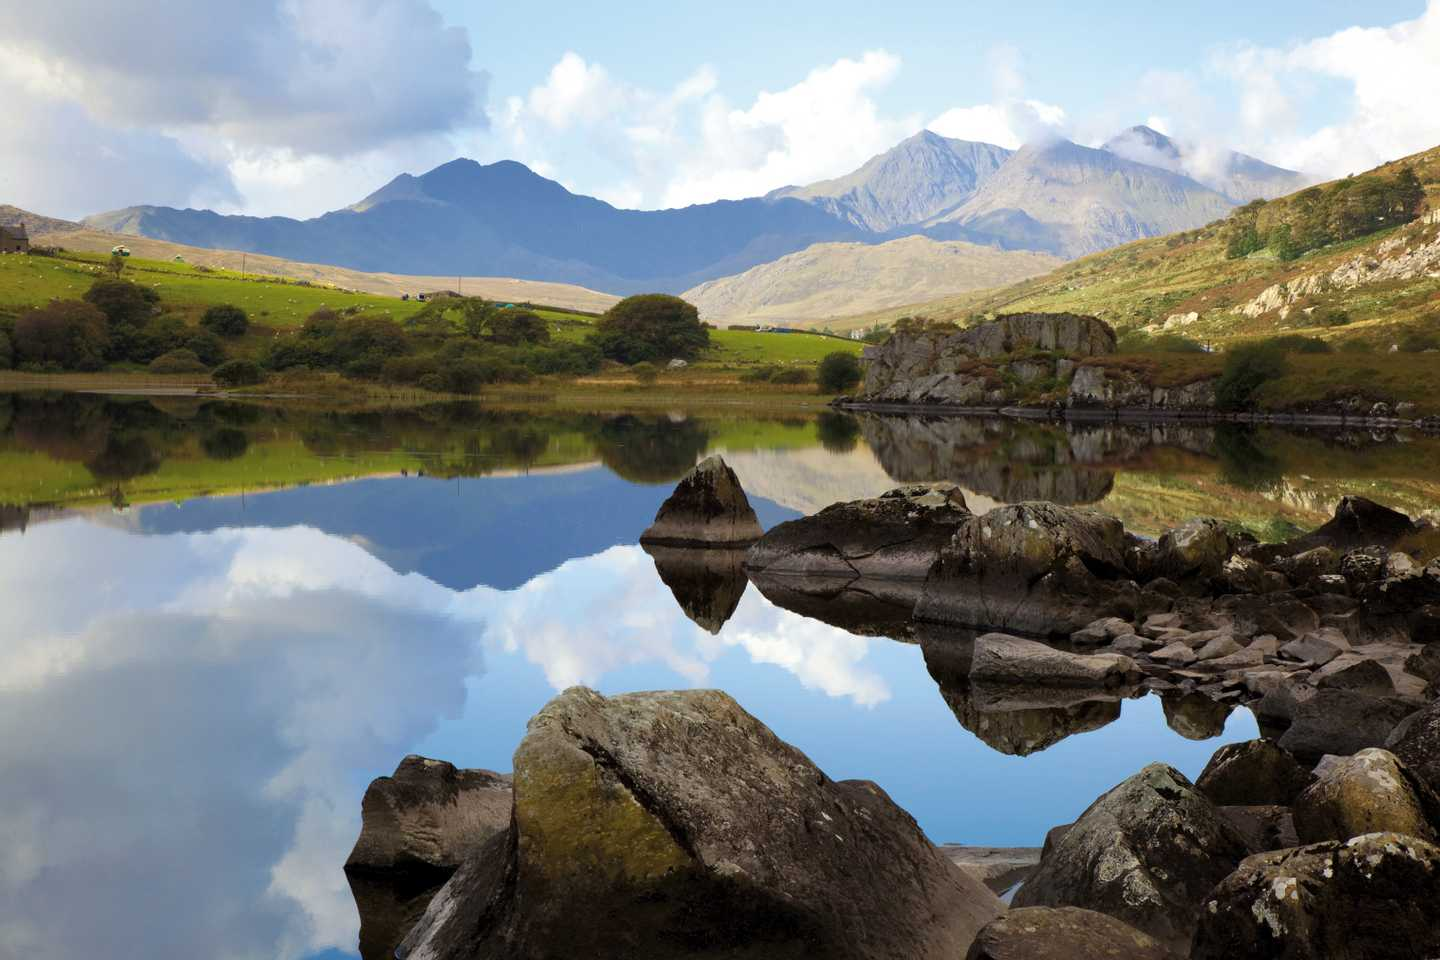 The clouds reflecting on a lake in Snowdonia